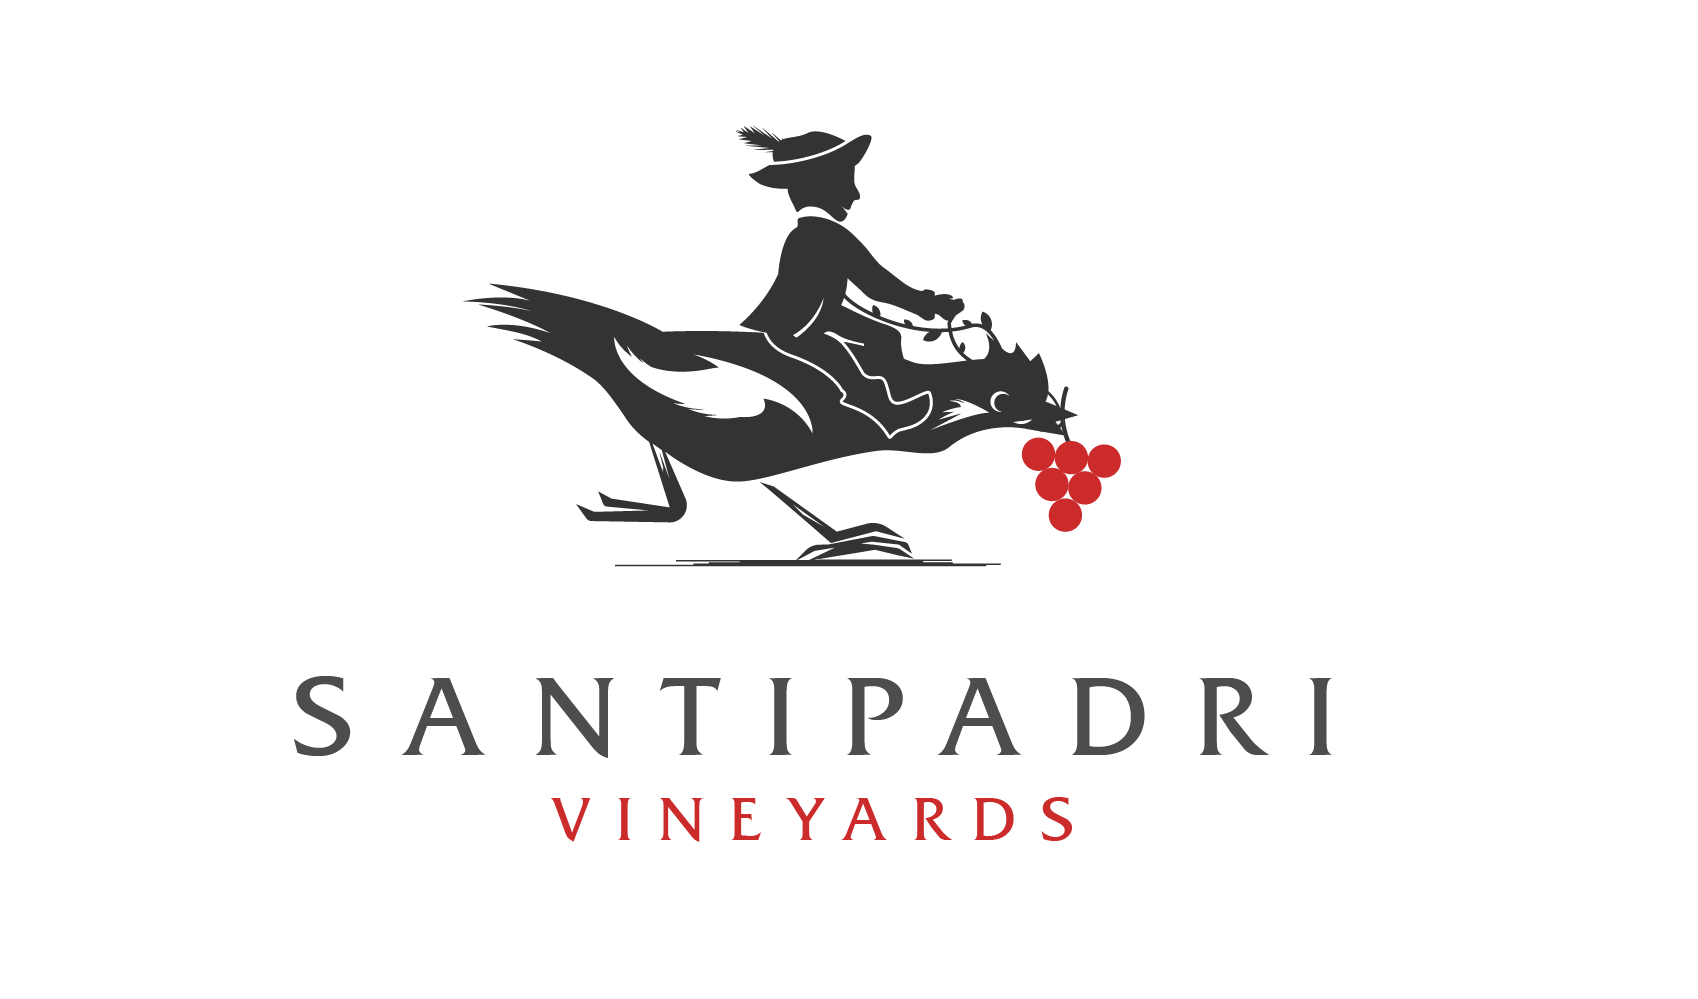 Santipadri Vineyards wine logo